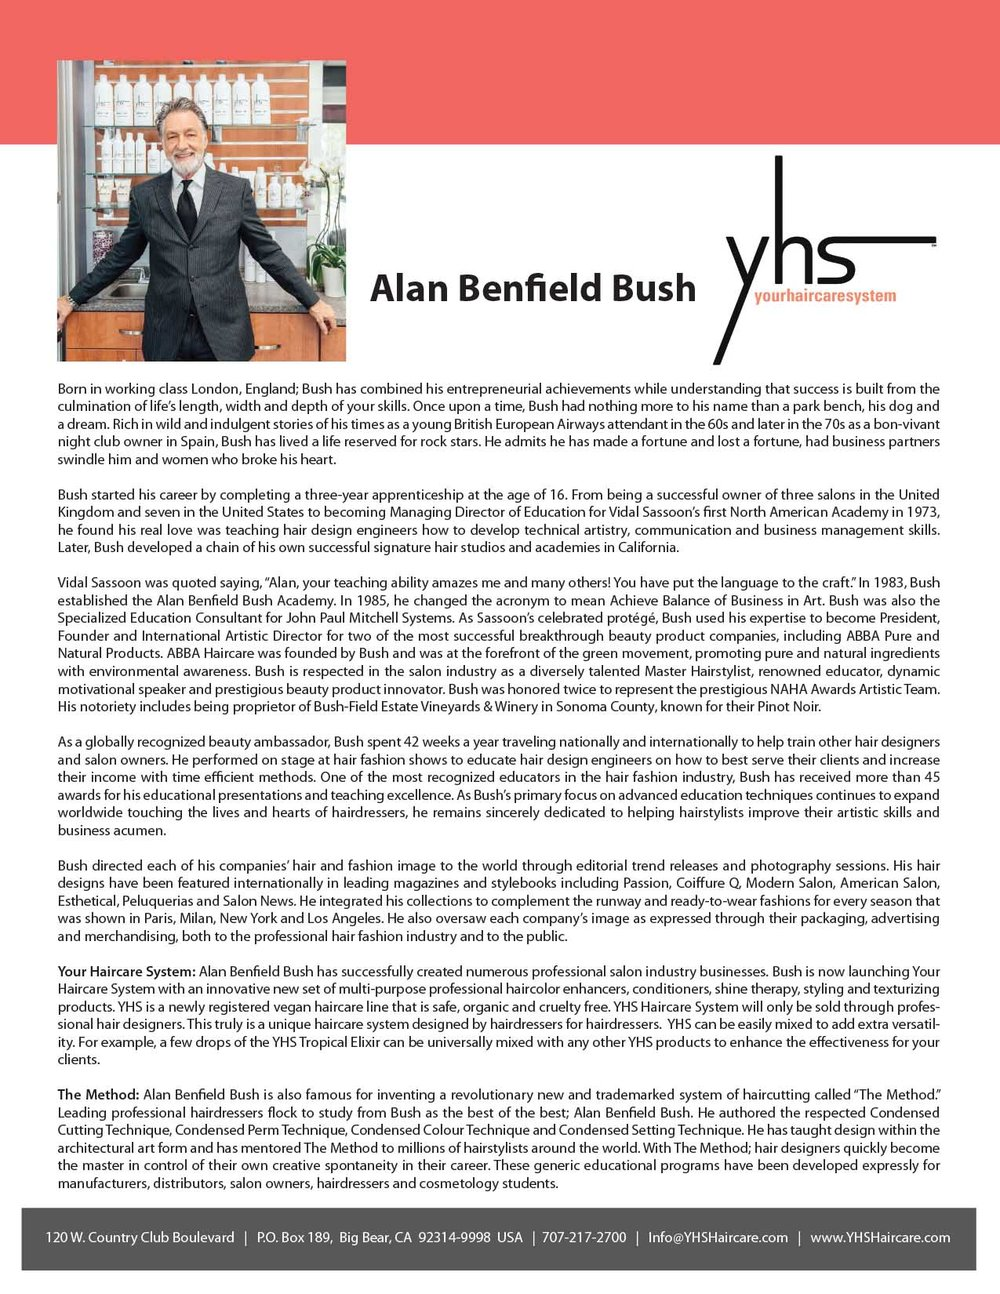 Alan Benfield Bush – YHS Bio